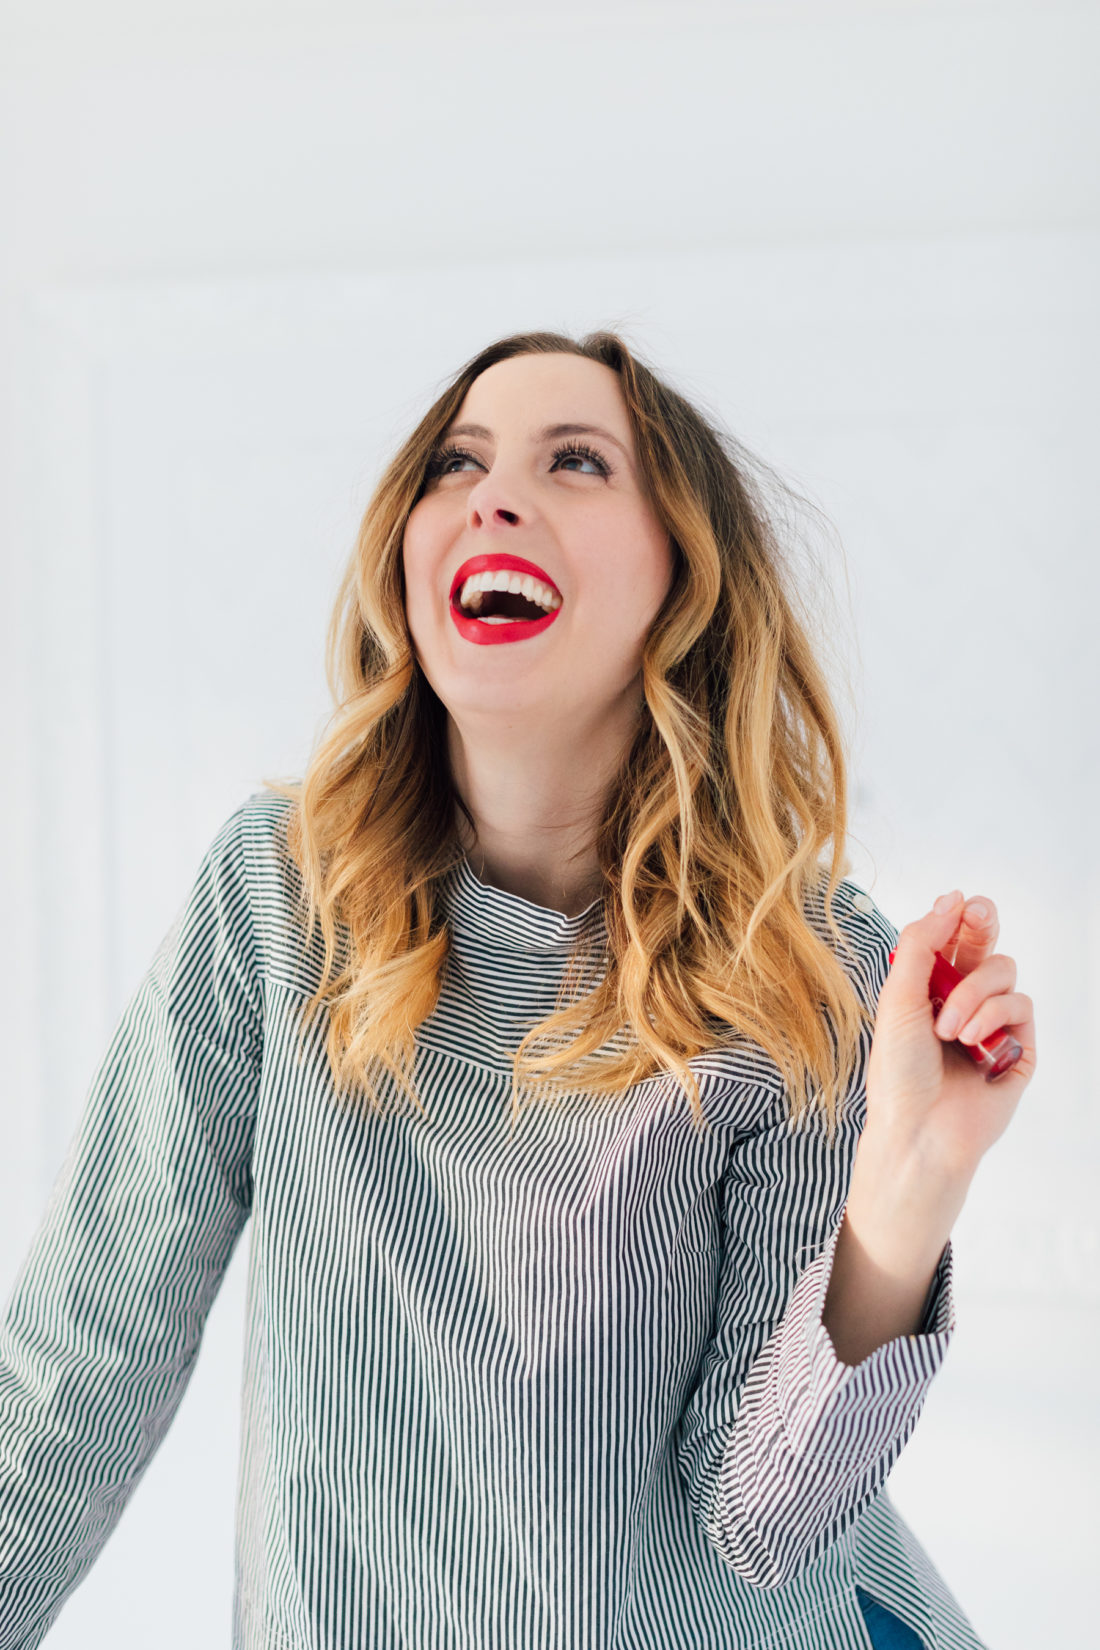 Eva Amurri Martino wears a striped boatneck top, and the perfect holiday red shade of lipstick